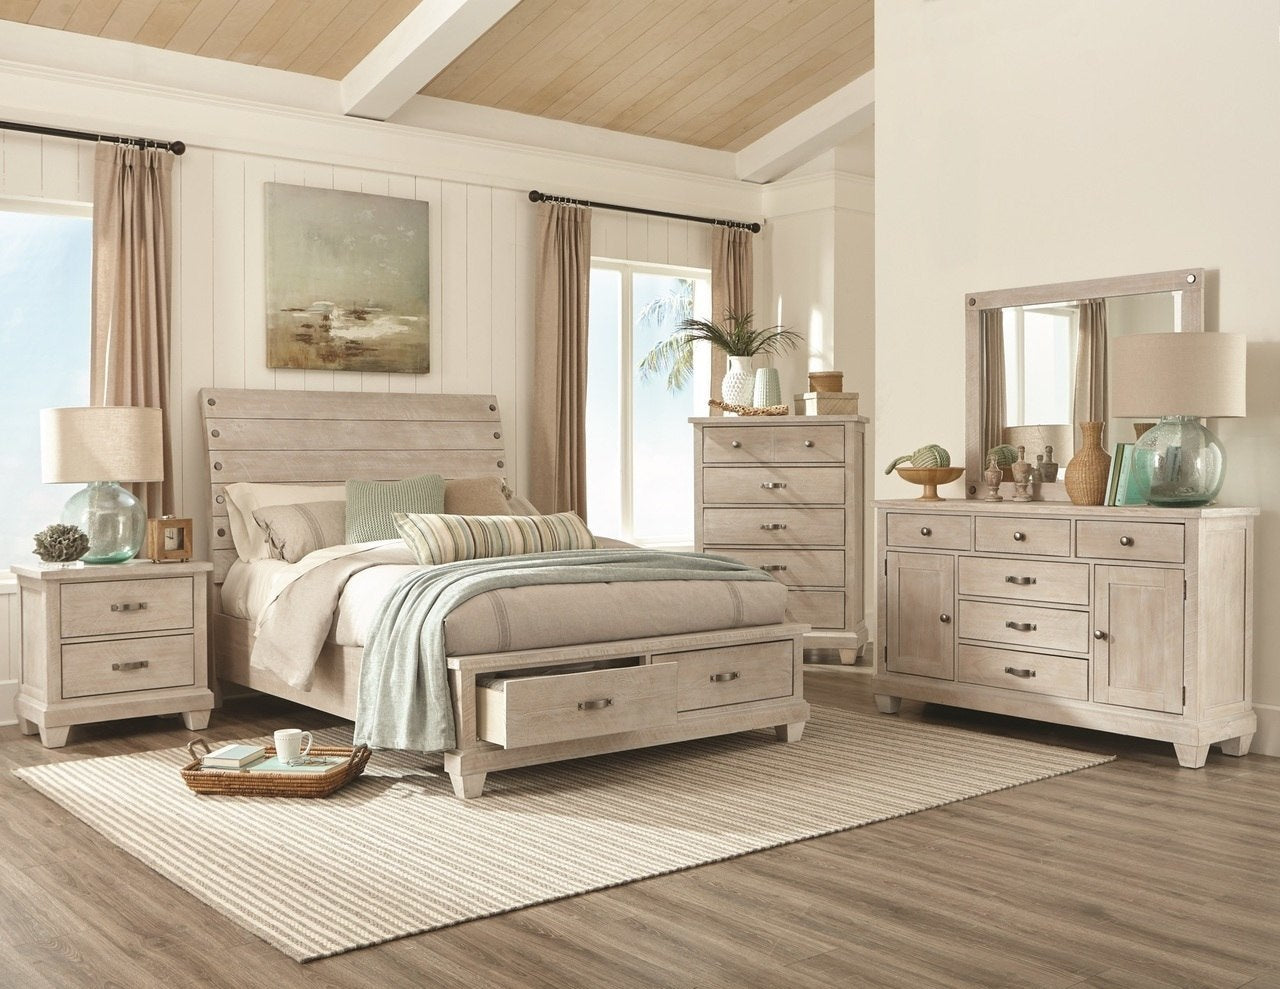 White Wash Country King Bedroom Set